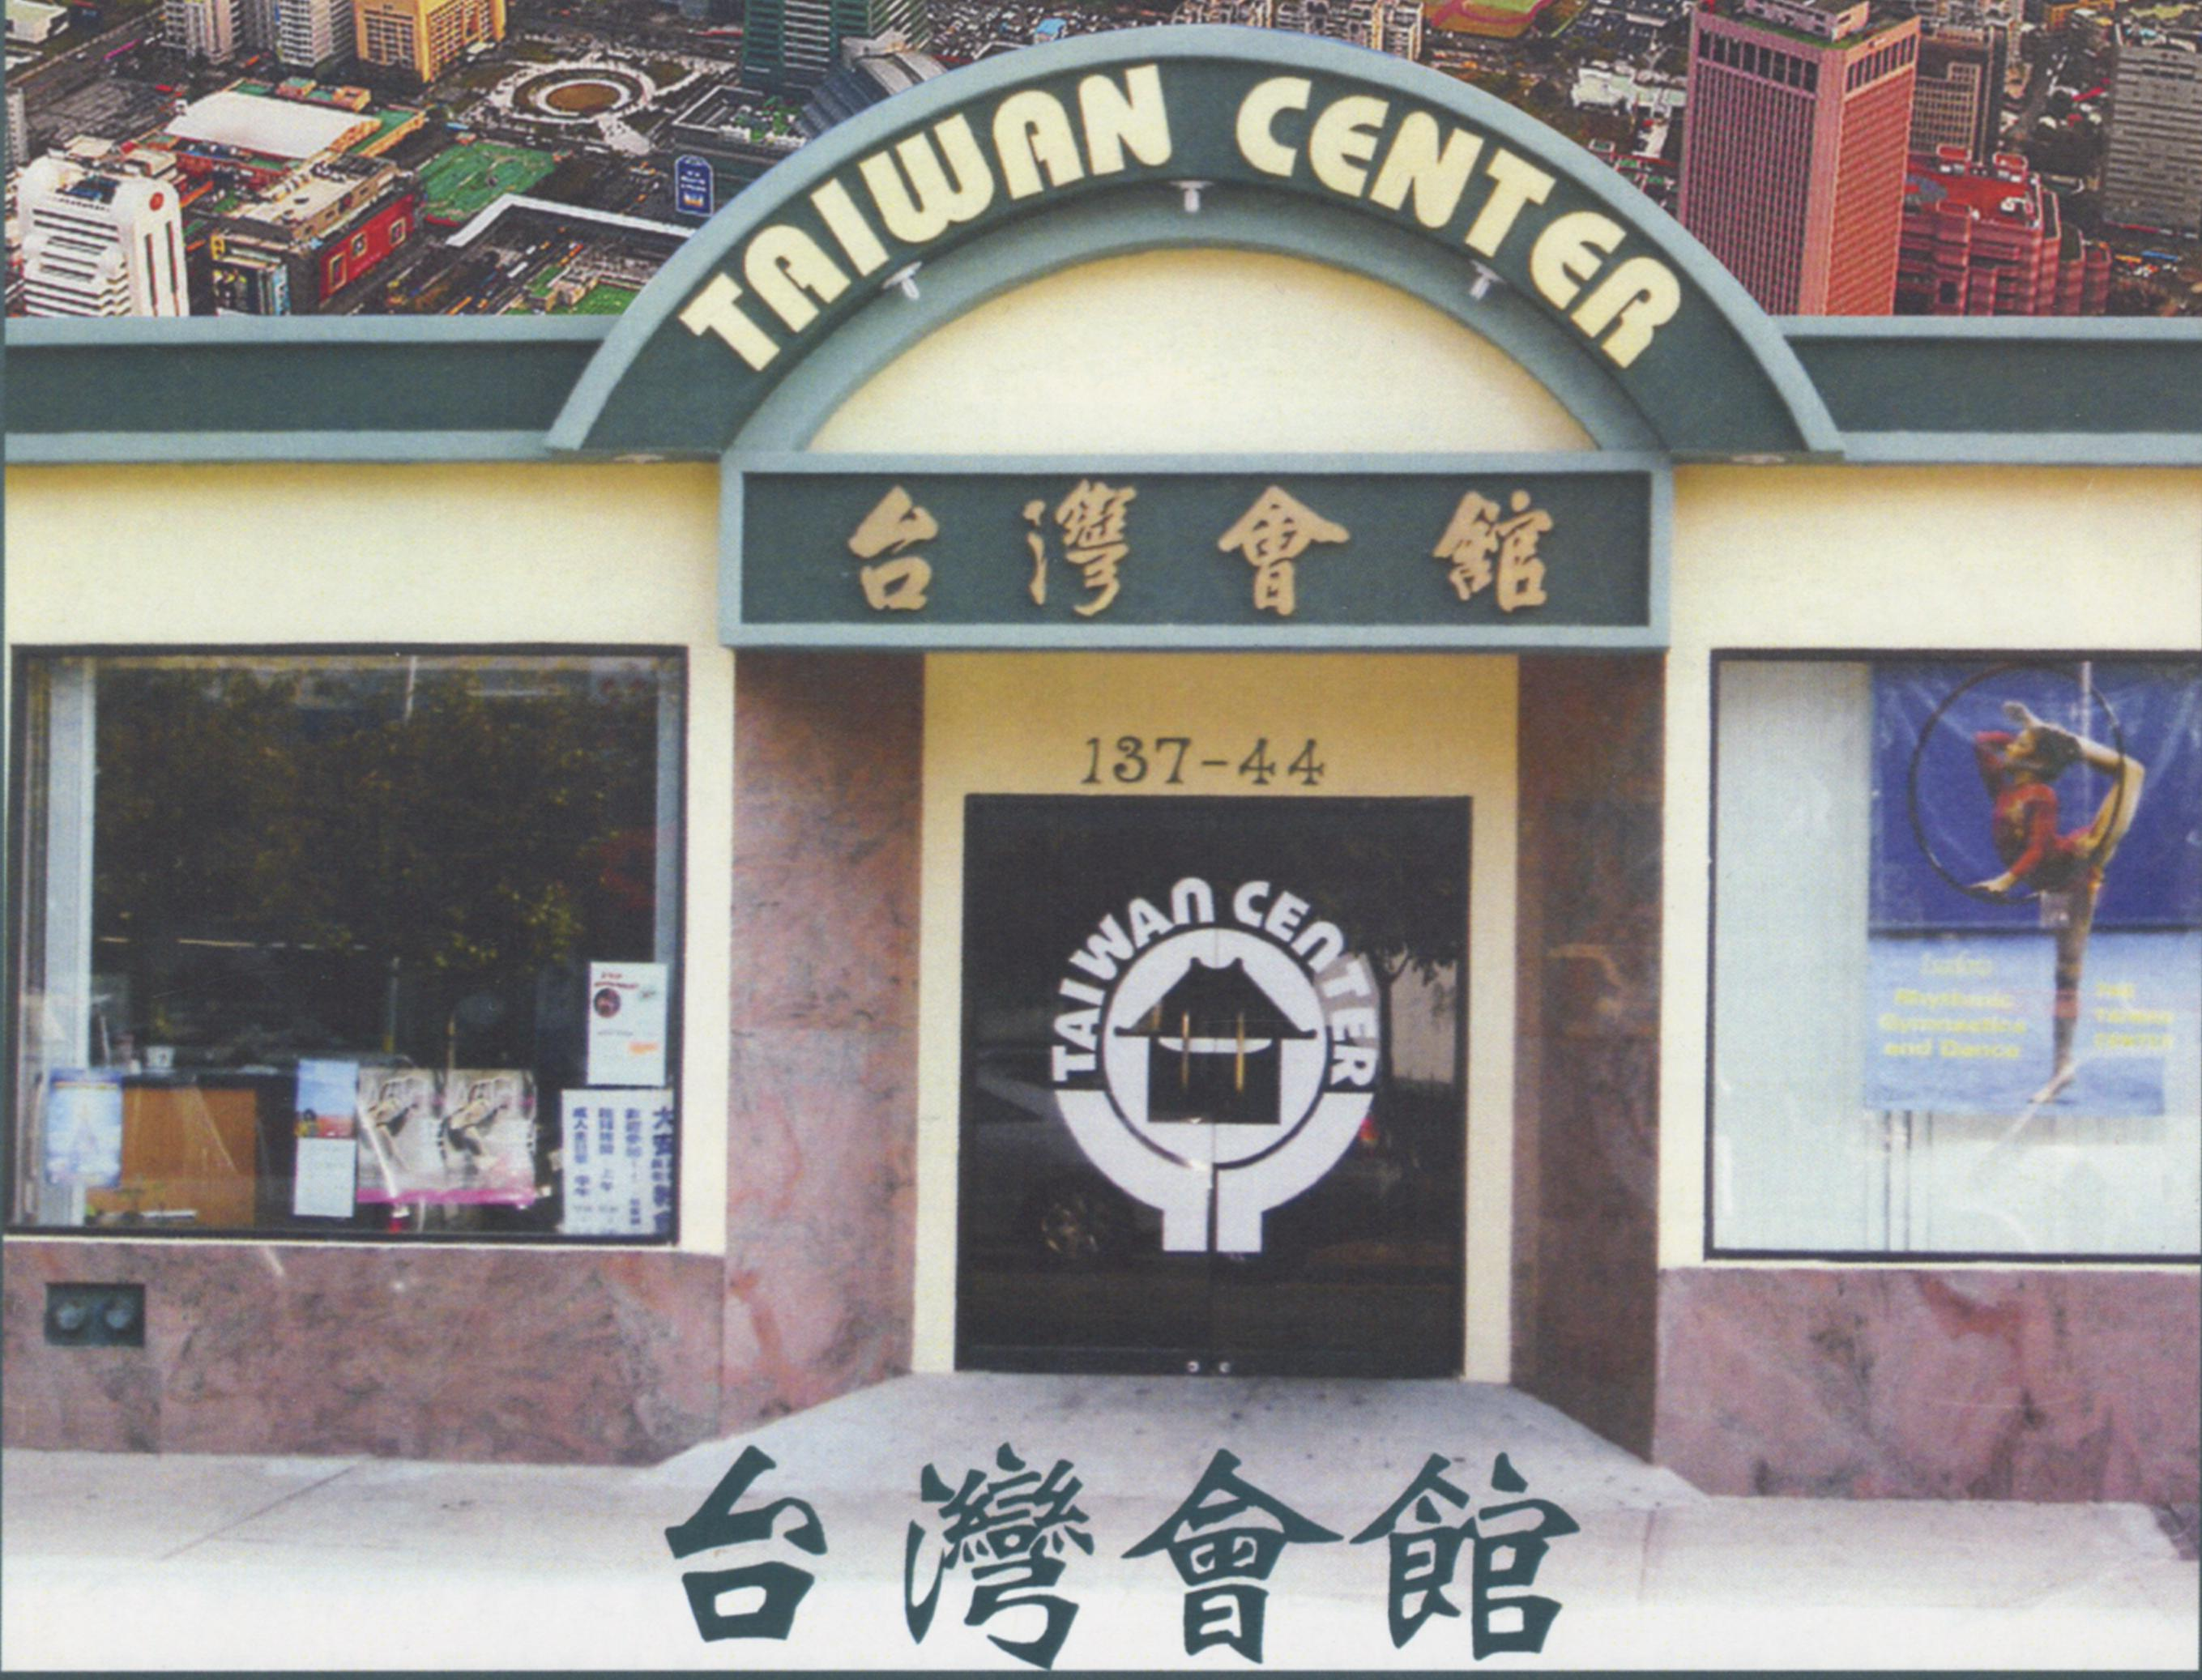 Taiwan Center/New York (紐約台灣會館)